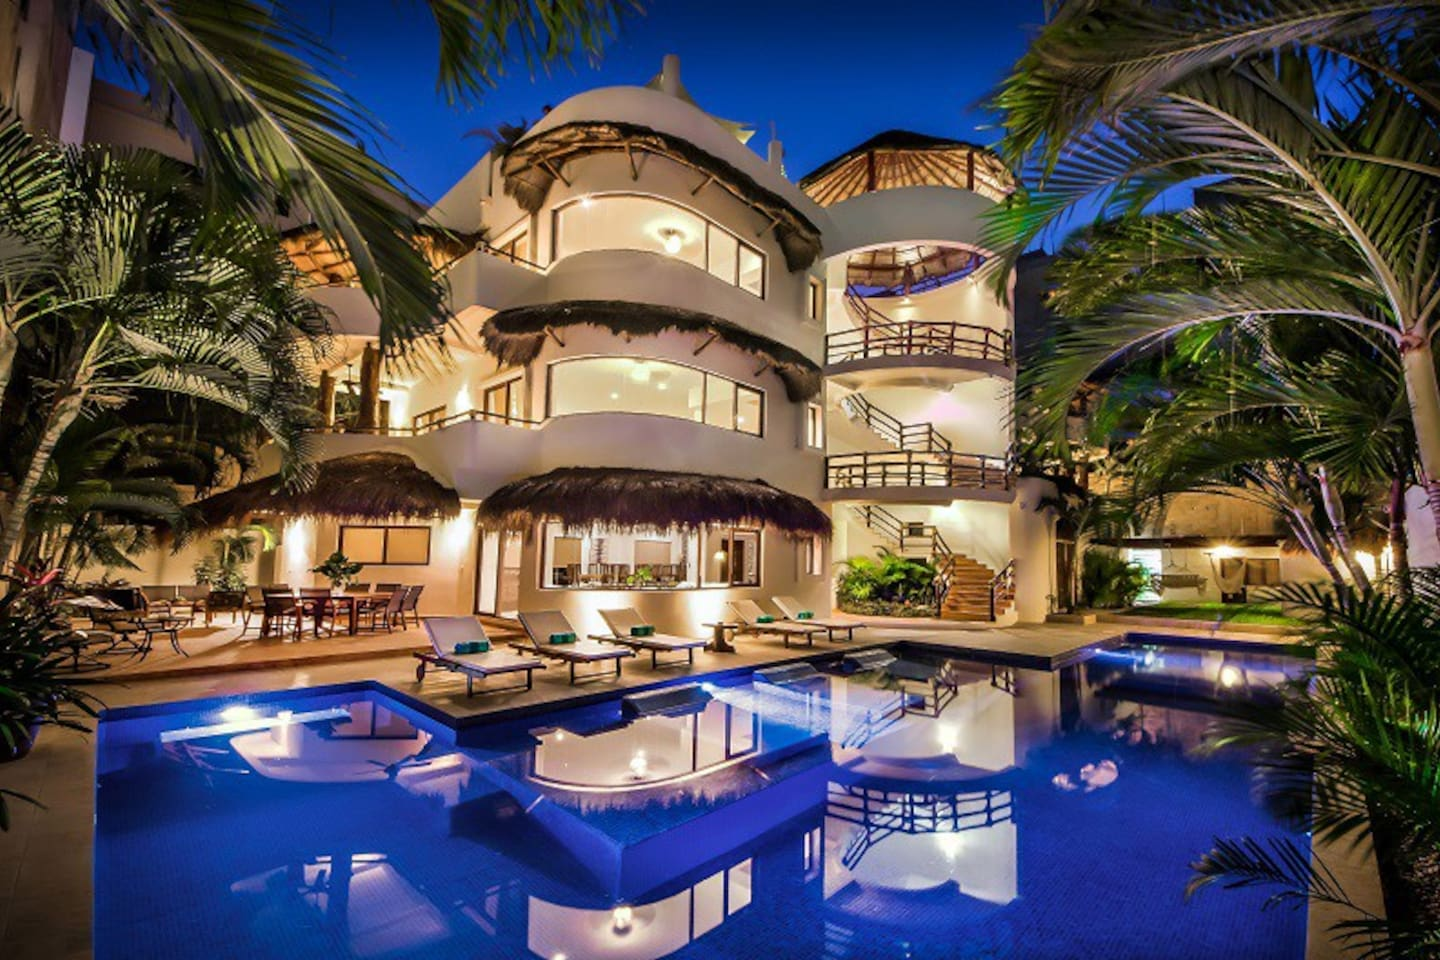 Mirasol 9 br estate downtown playa houses for rent in playa del carmen quintana roo mexico